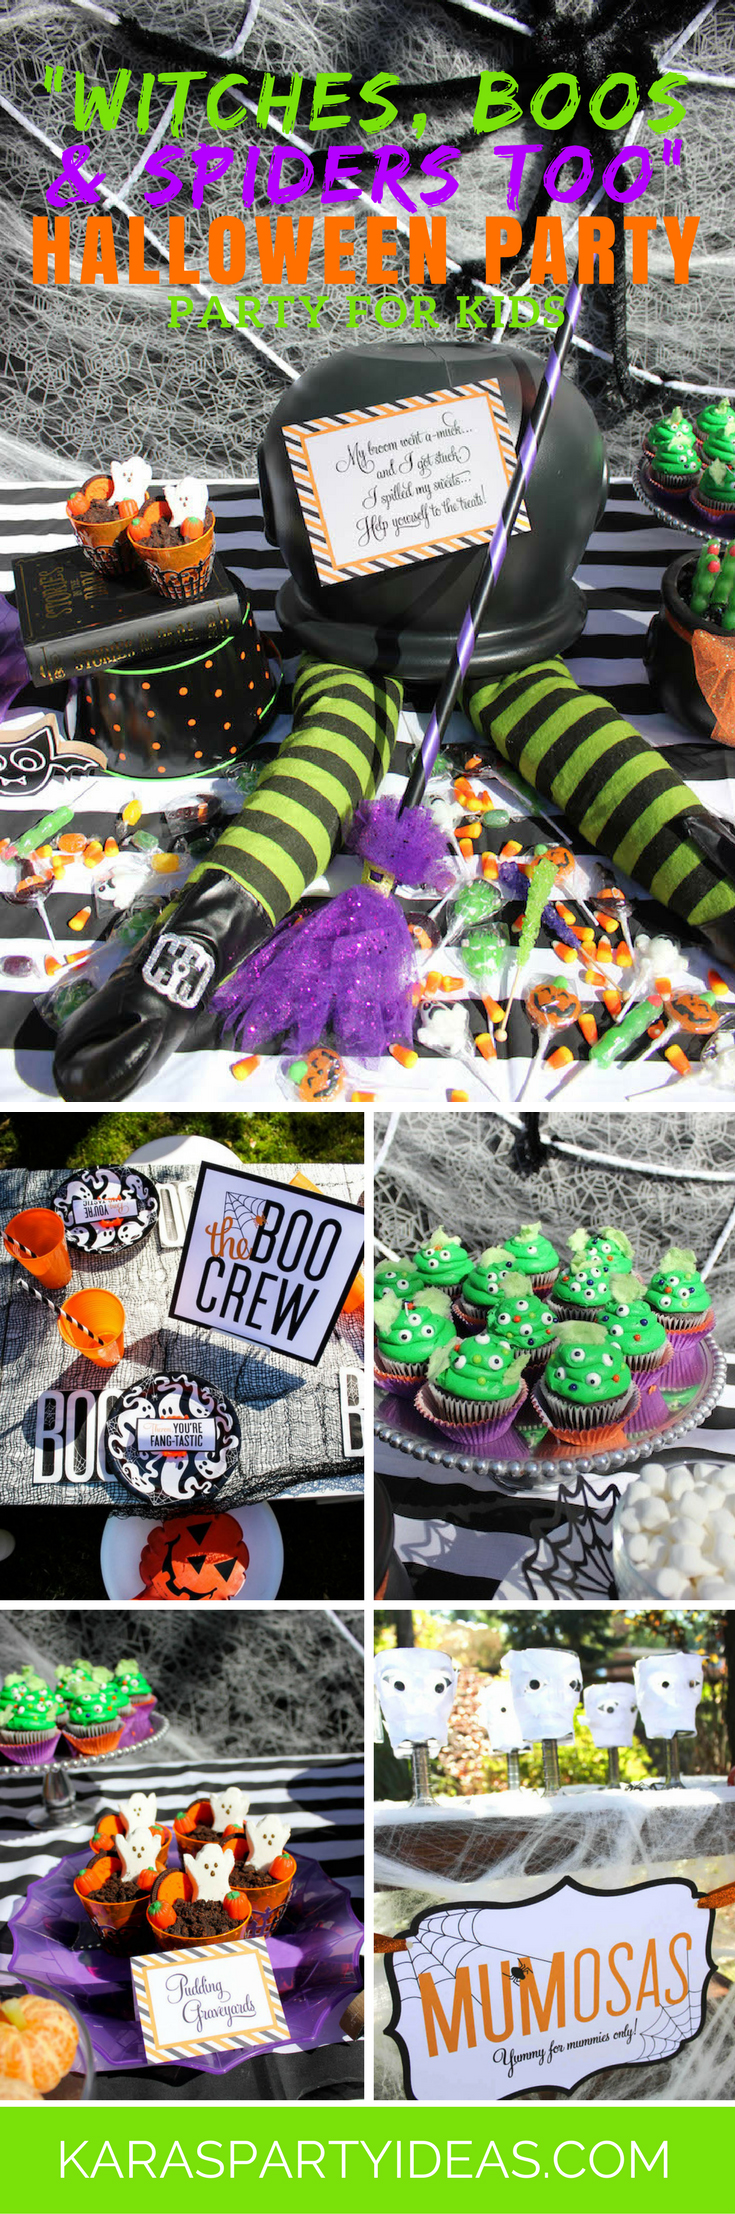 Witches Boos and Spiders too Halloween Party for Kids via Kara's Party Ideas - KarasPartyIdeas.com